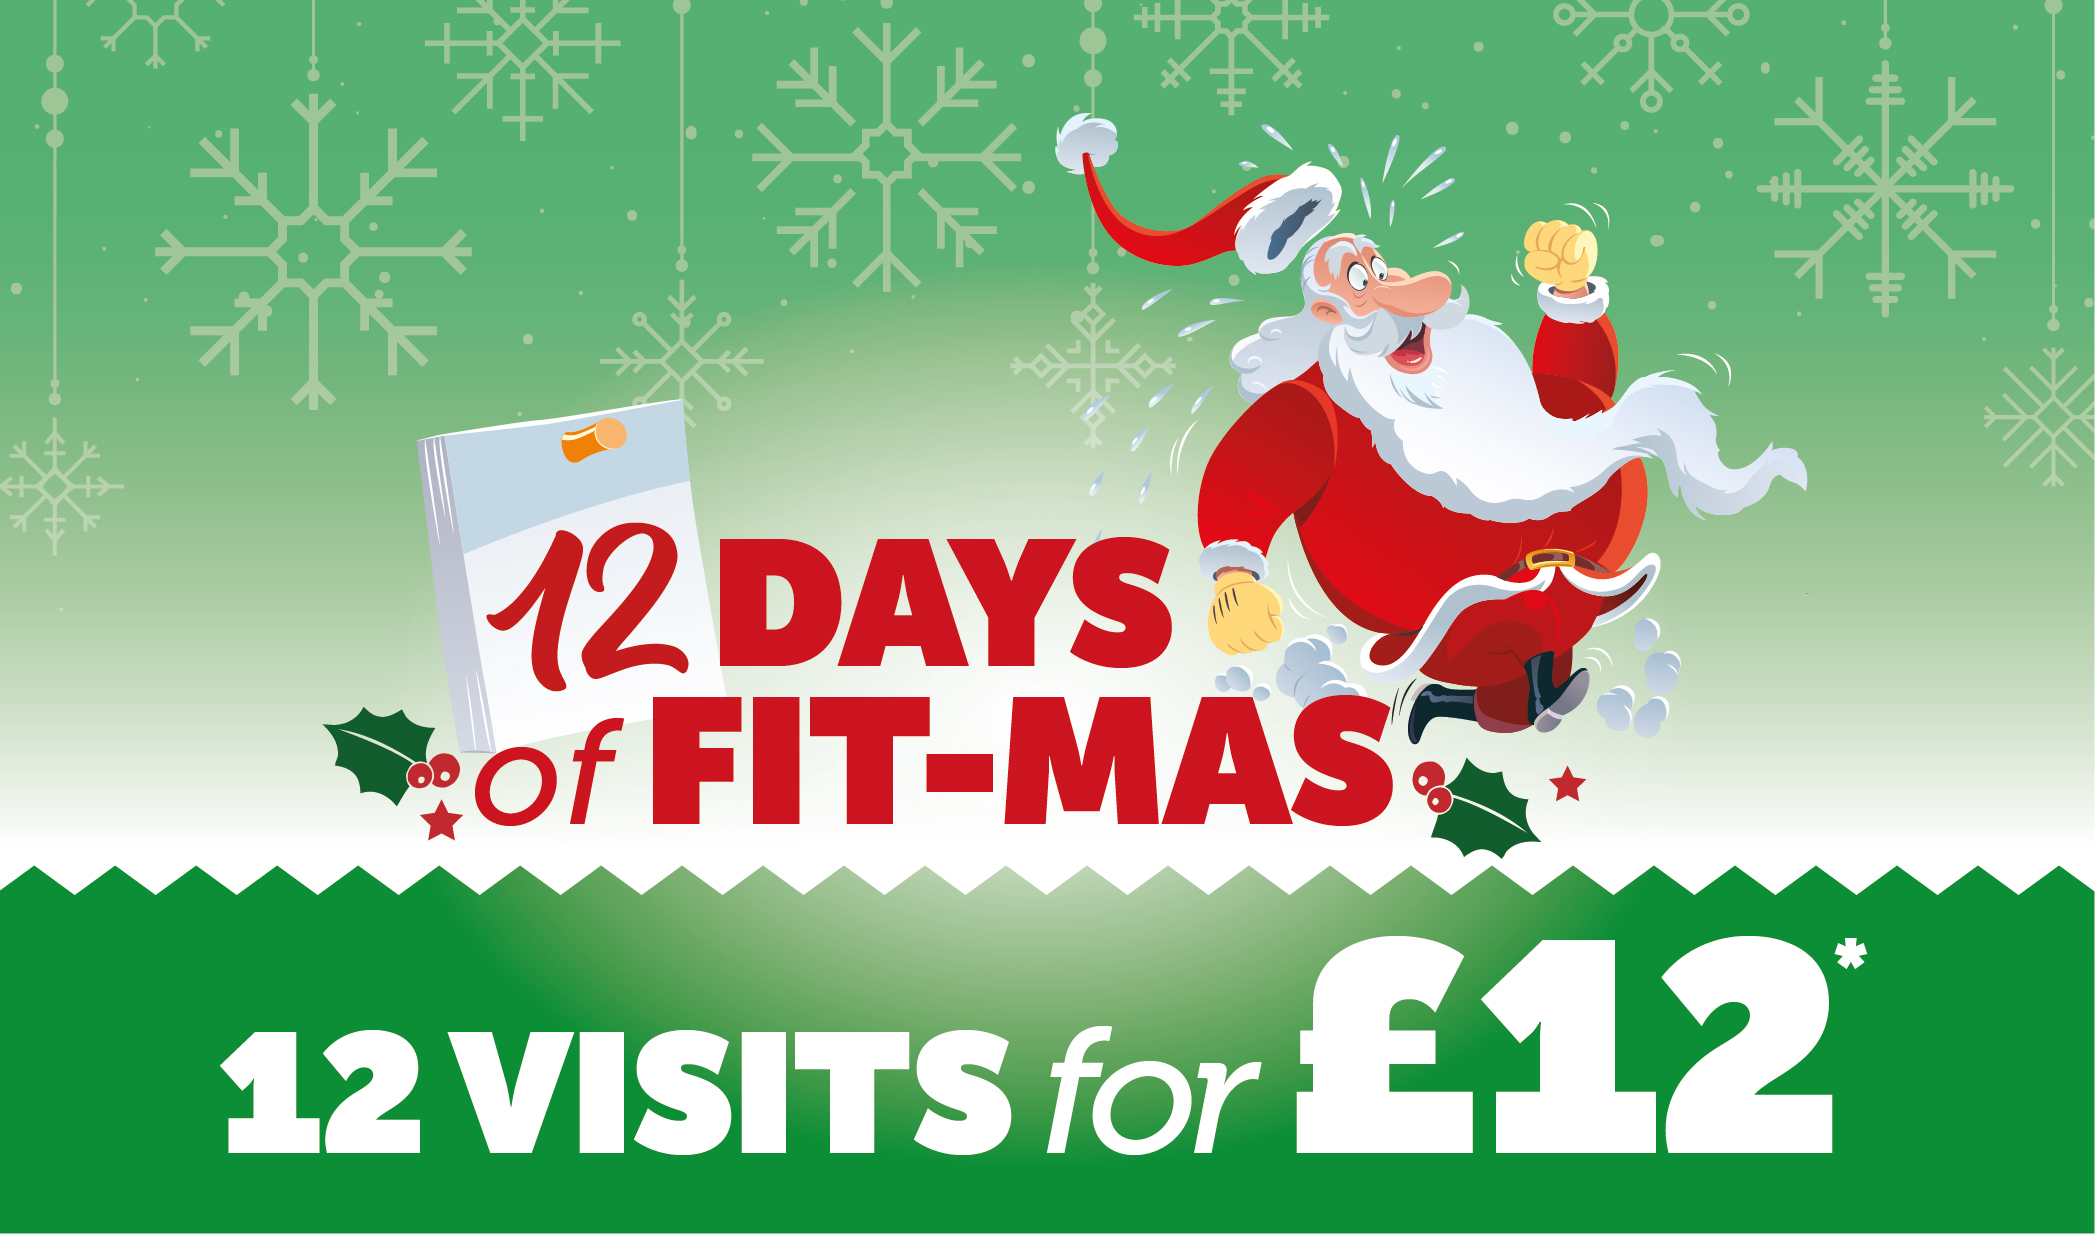 12 Days of Fitmass